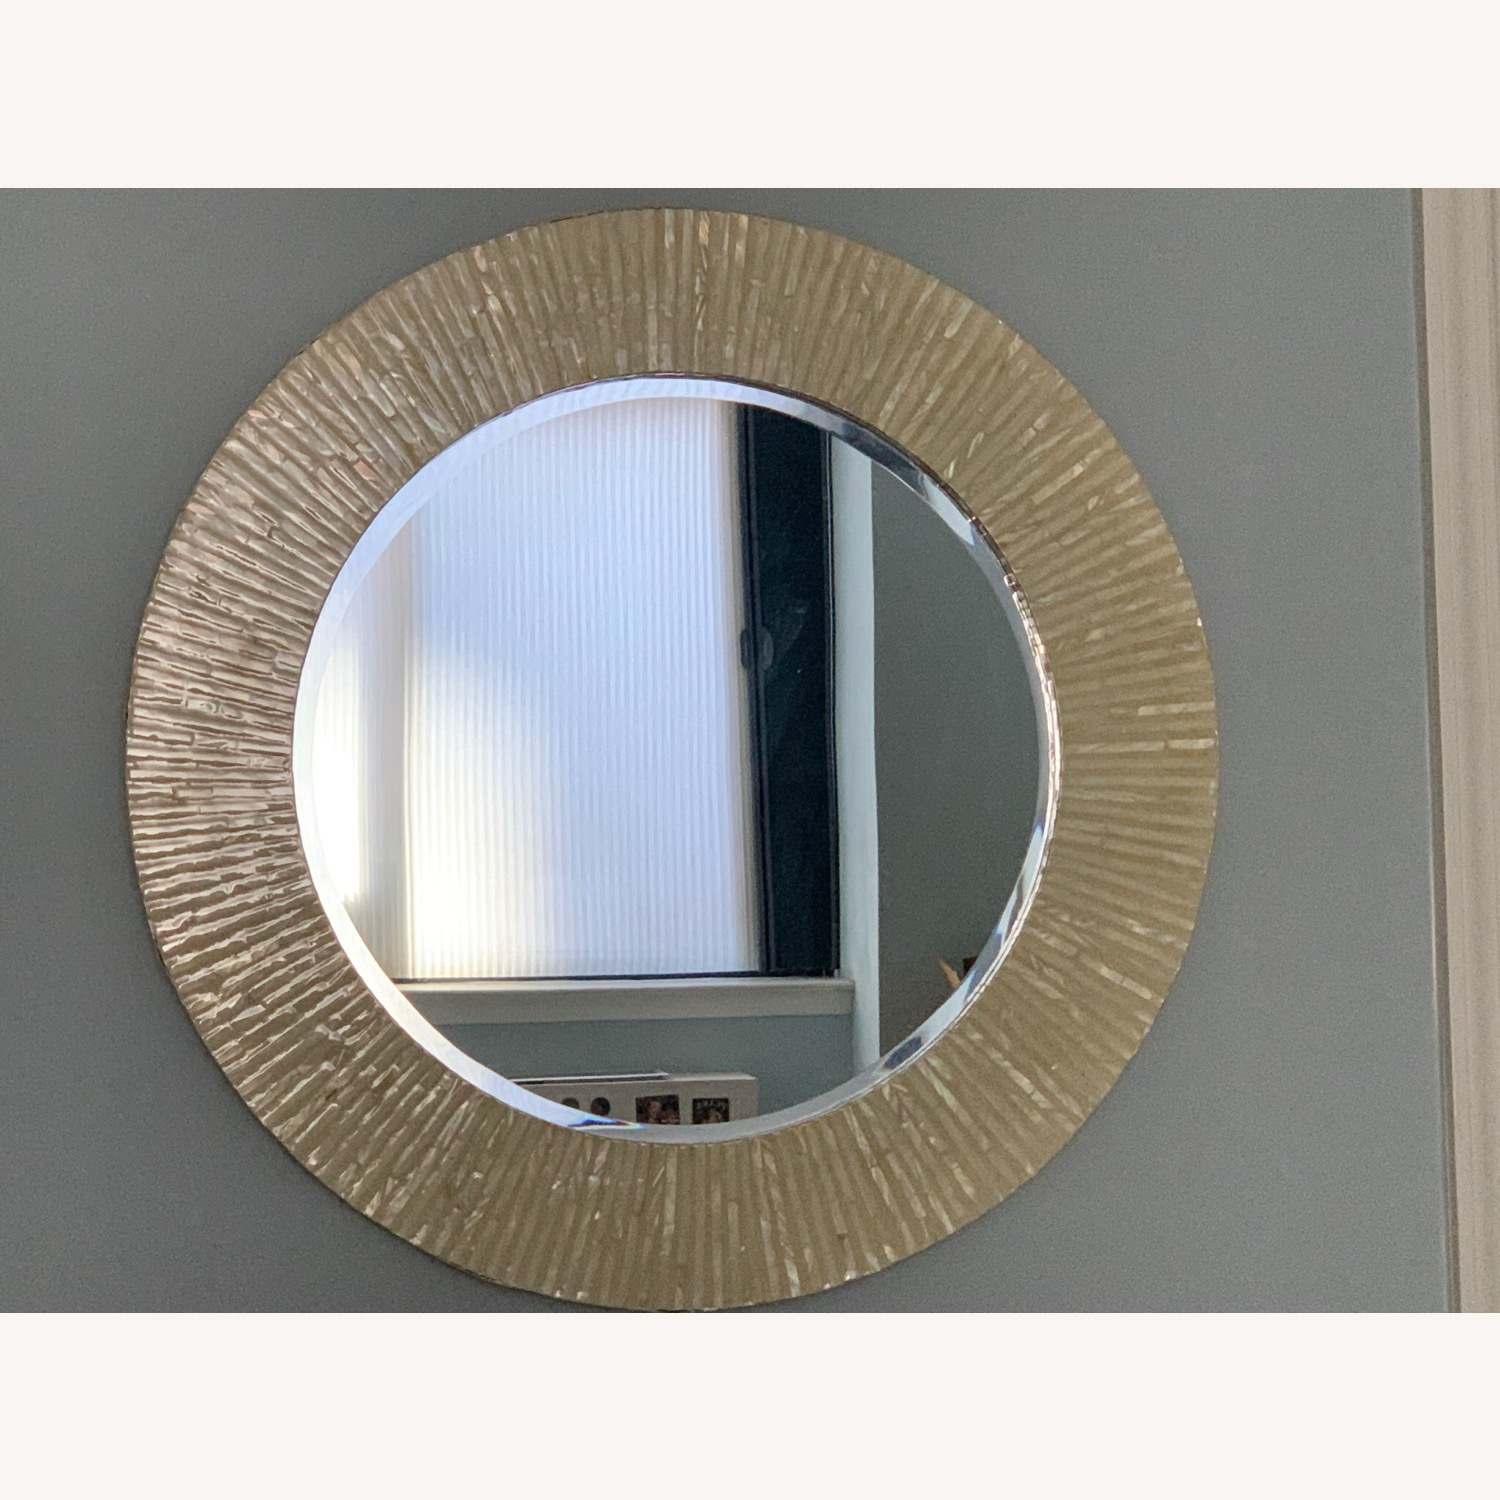 Pier 1 Mother of Pearl Round Mirror - image-1